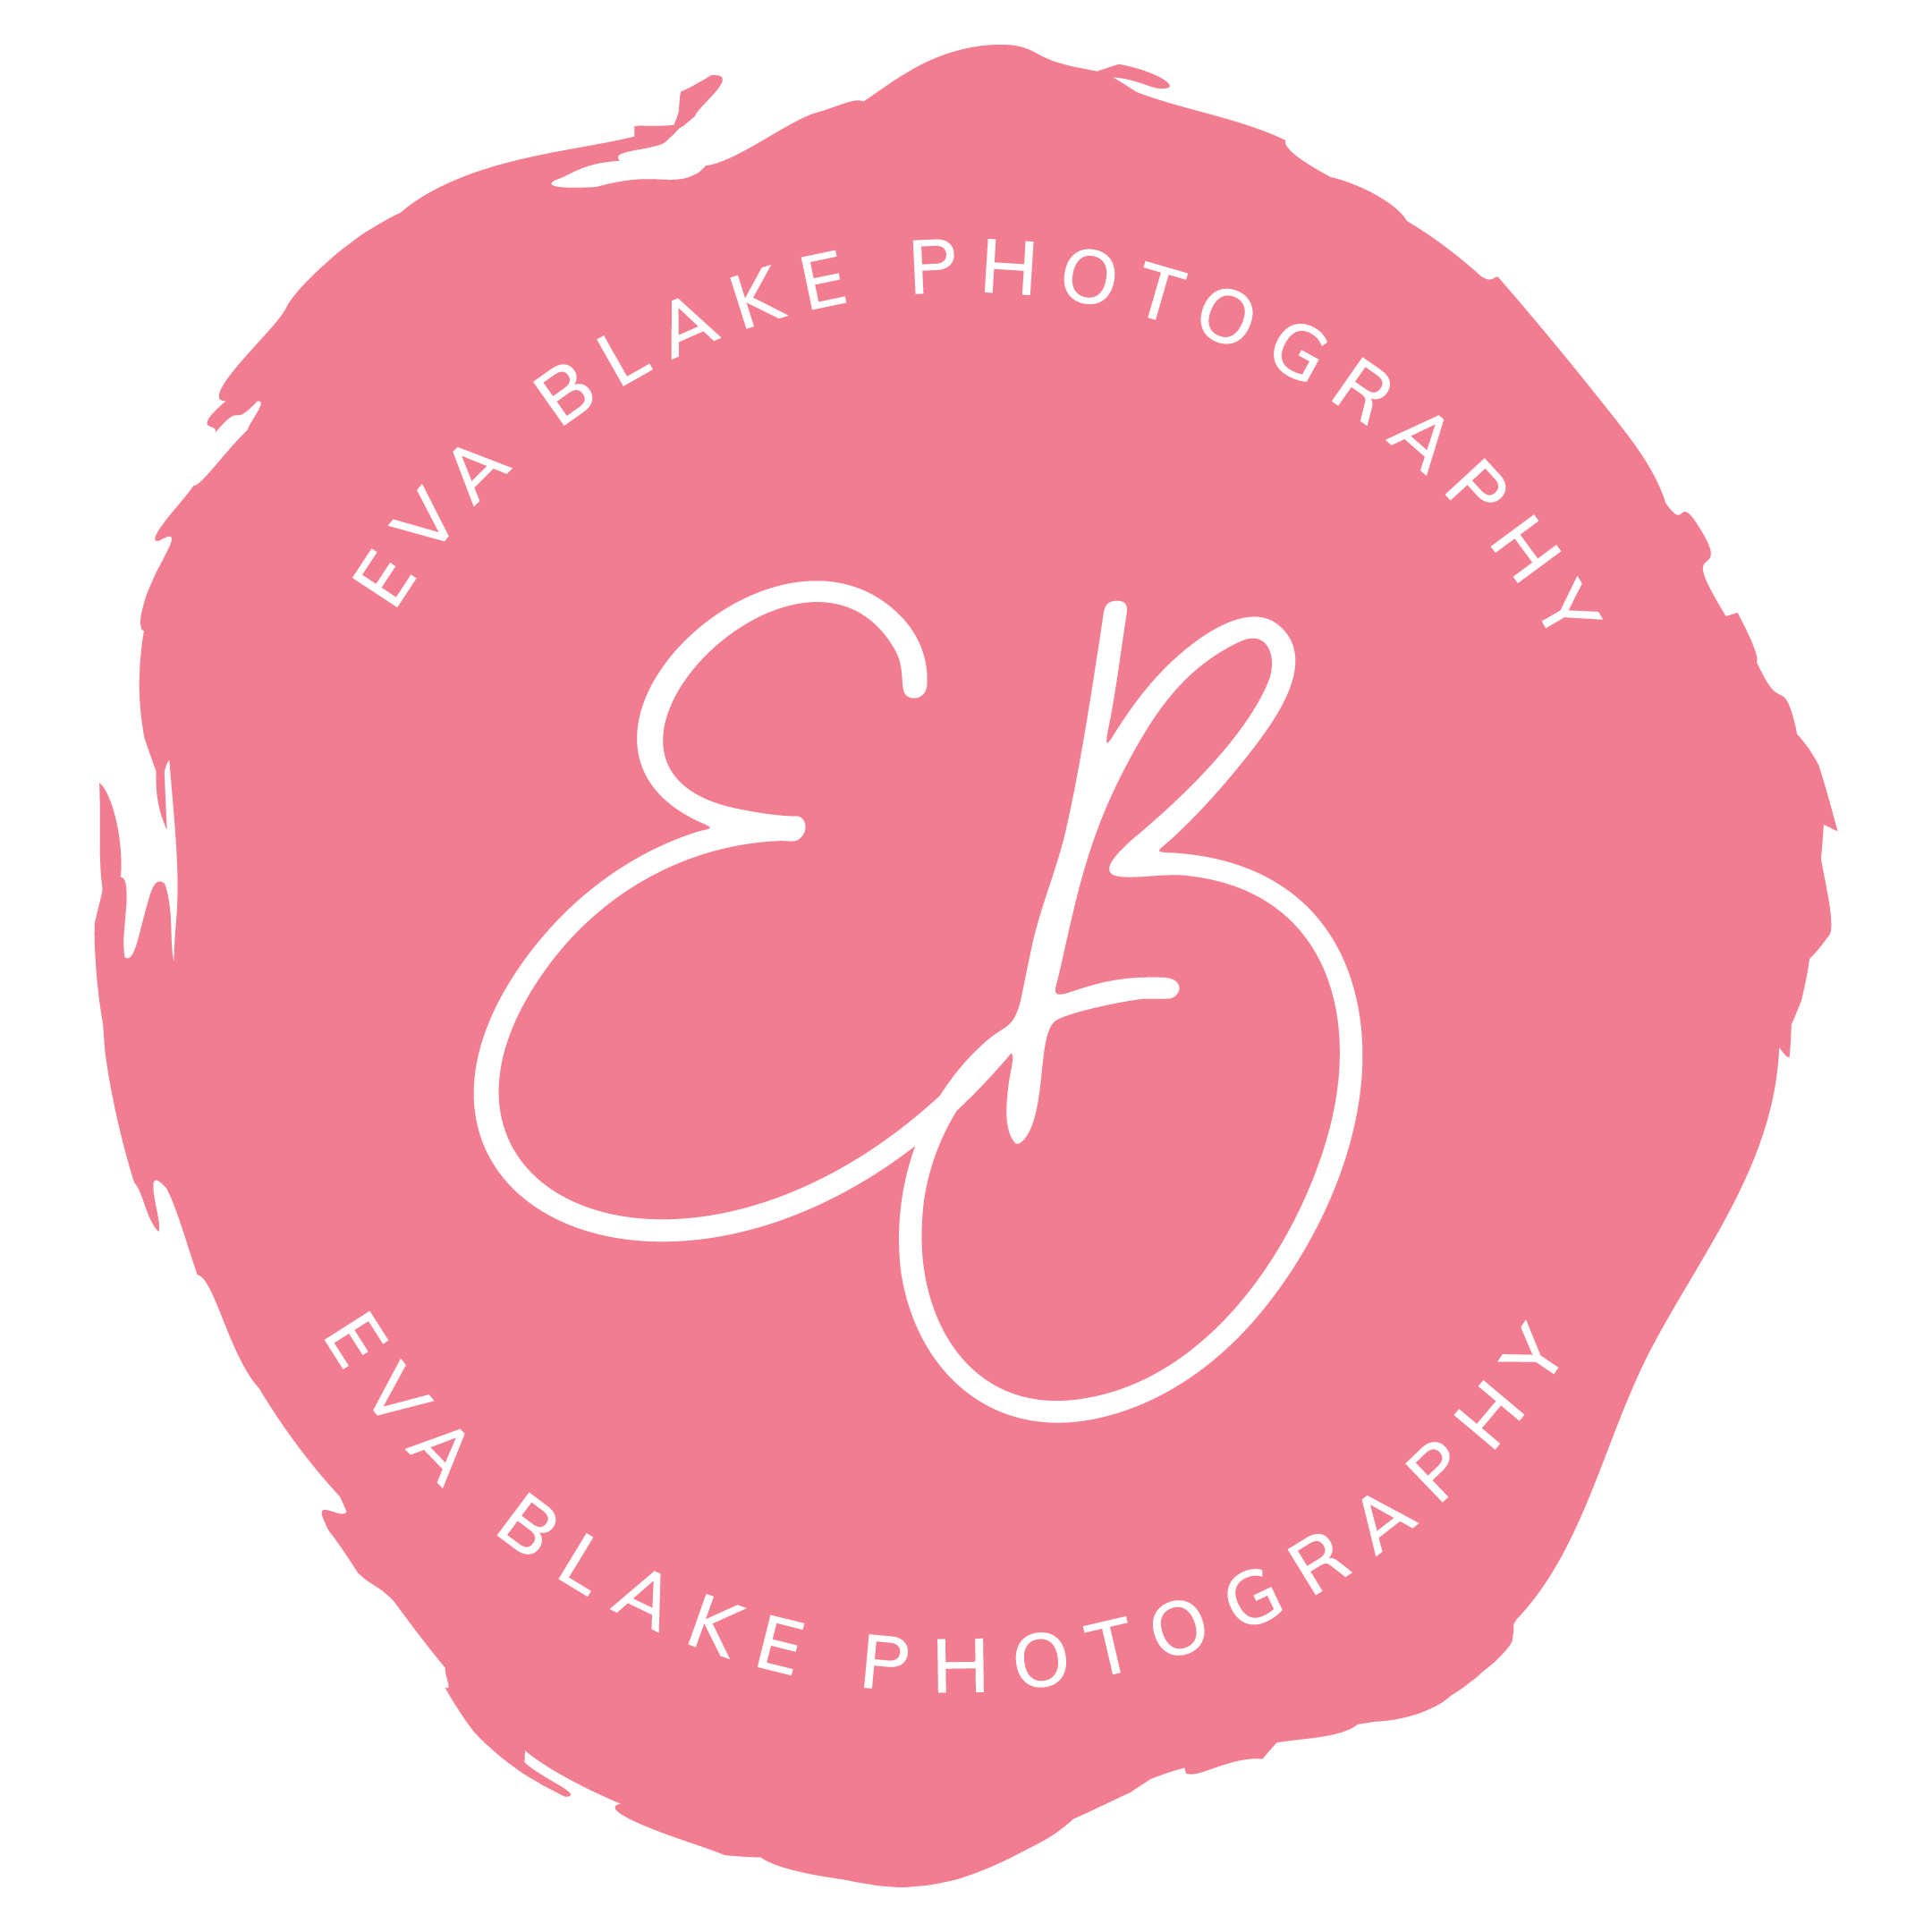 Eva Blake Photography